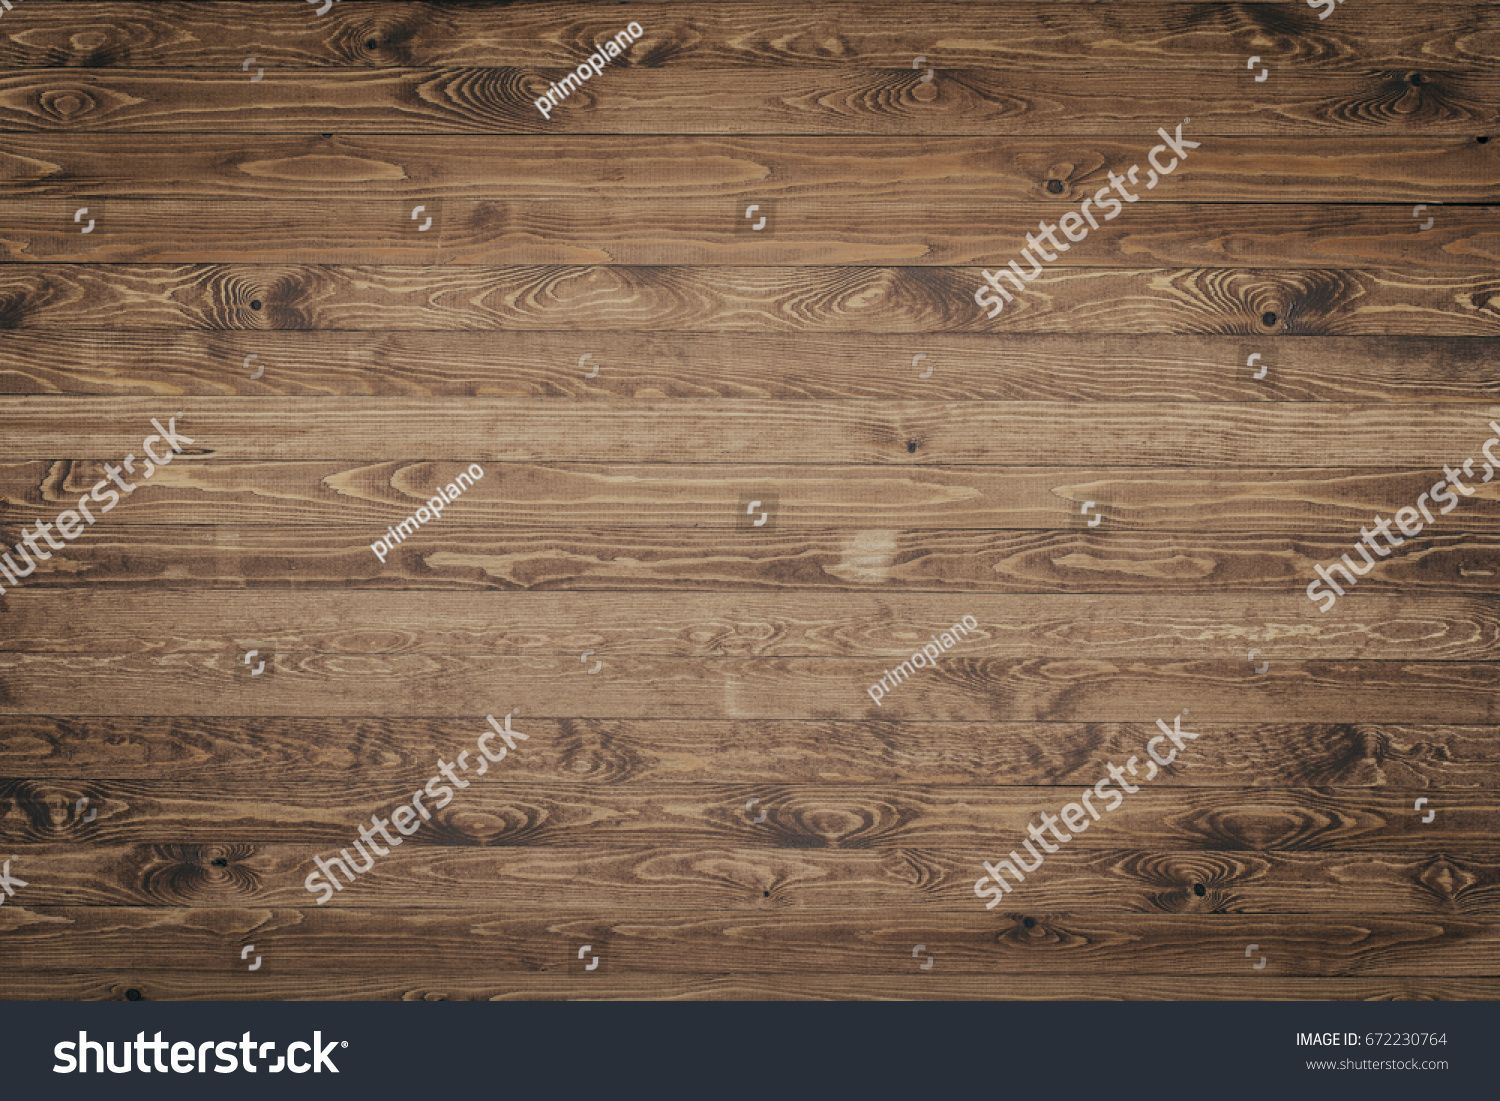 Wood texture background surface with old natural pattern. Grunge surface rustic wooden table top view surface#natural#pattern#Wood #woodtexturebackground Wood texture background surface with old natural pattern. Grunge surface rustic wooden table top view surface#natural#pattern#Wood #woodtexturebackground